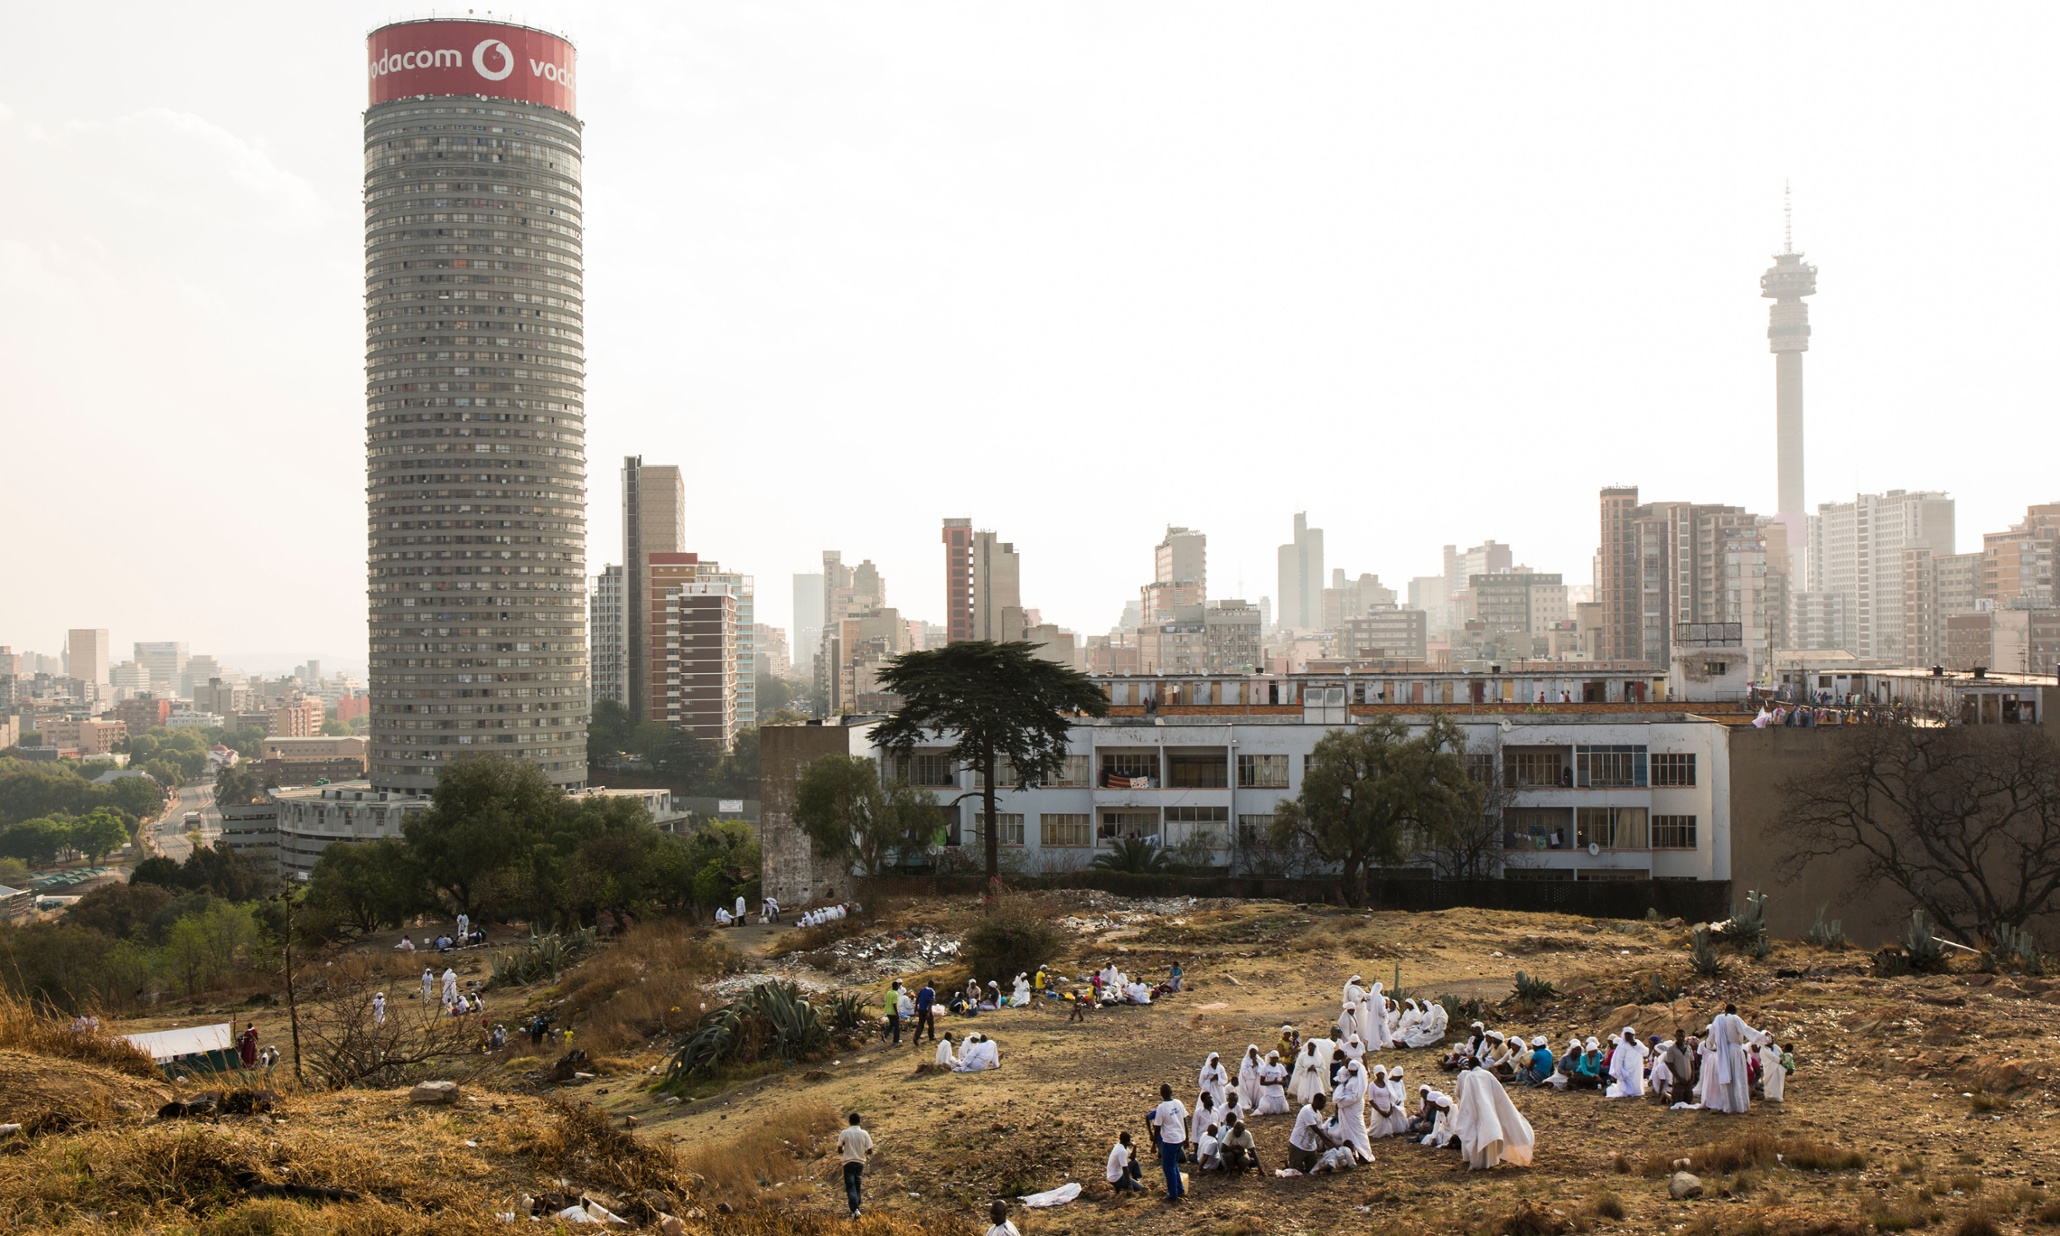 Johannesburg 39 s ponte city 39 the tallest and grandest urban for 13th floor south africa